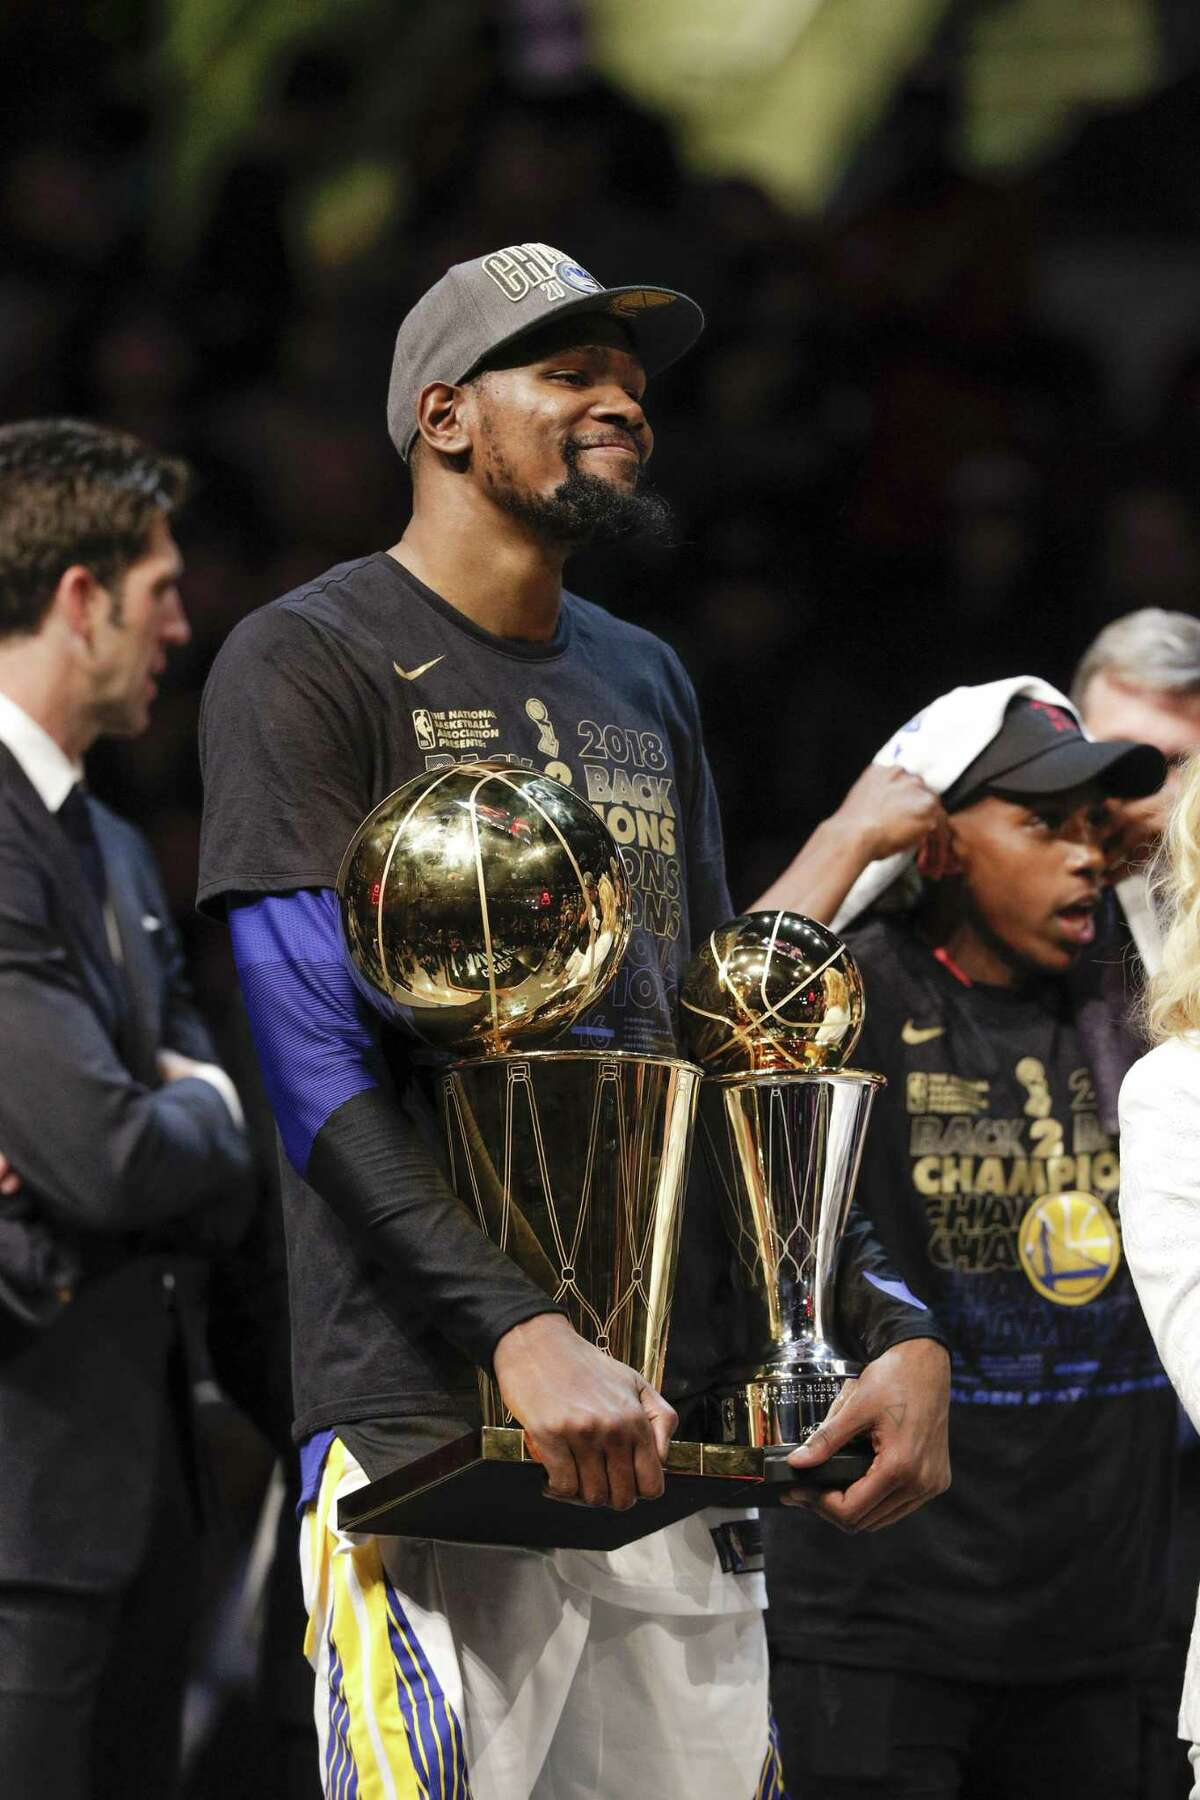 Golden State Warriors' Kevin Durant holds the the Larry OíBrien NBA Championship Trophy and The Bill Russell MVP Award after game 4 of The NBA Finals between the Golden State Warriors and the Cleveland Cavaliers at Quicken Loans Arena on Friday, June 8, 2018 in Cleveland, Ohio.